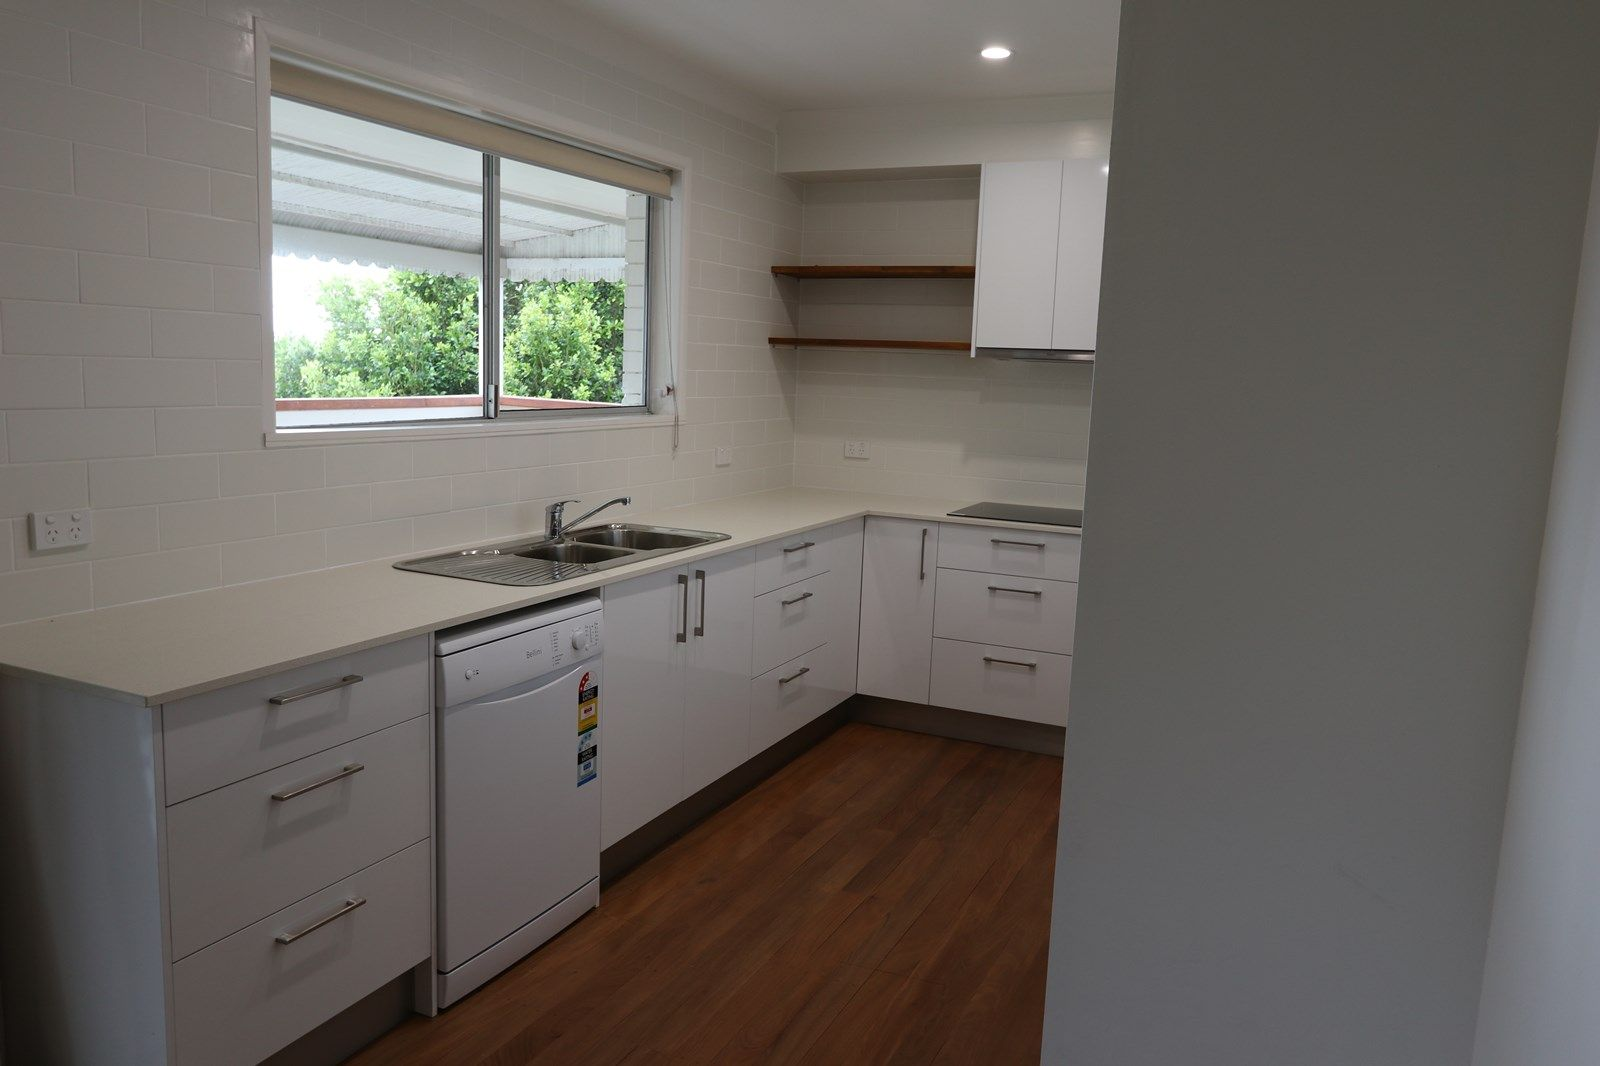 Unit 1/16 Woodgee St, Currumbin QLD 4223, Image 1